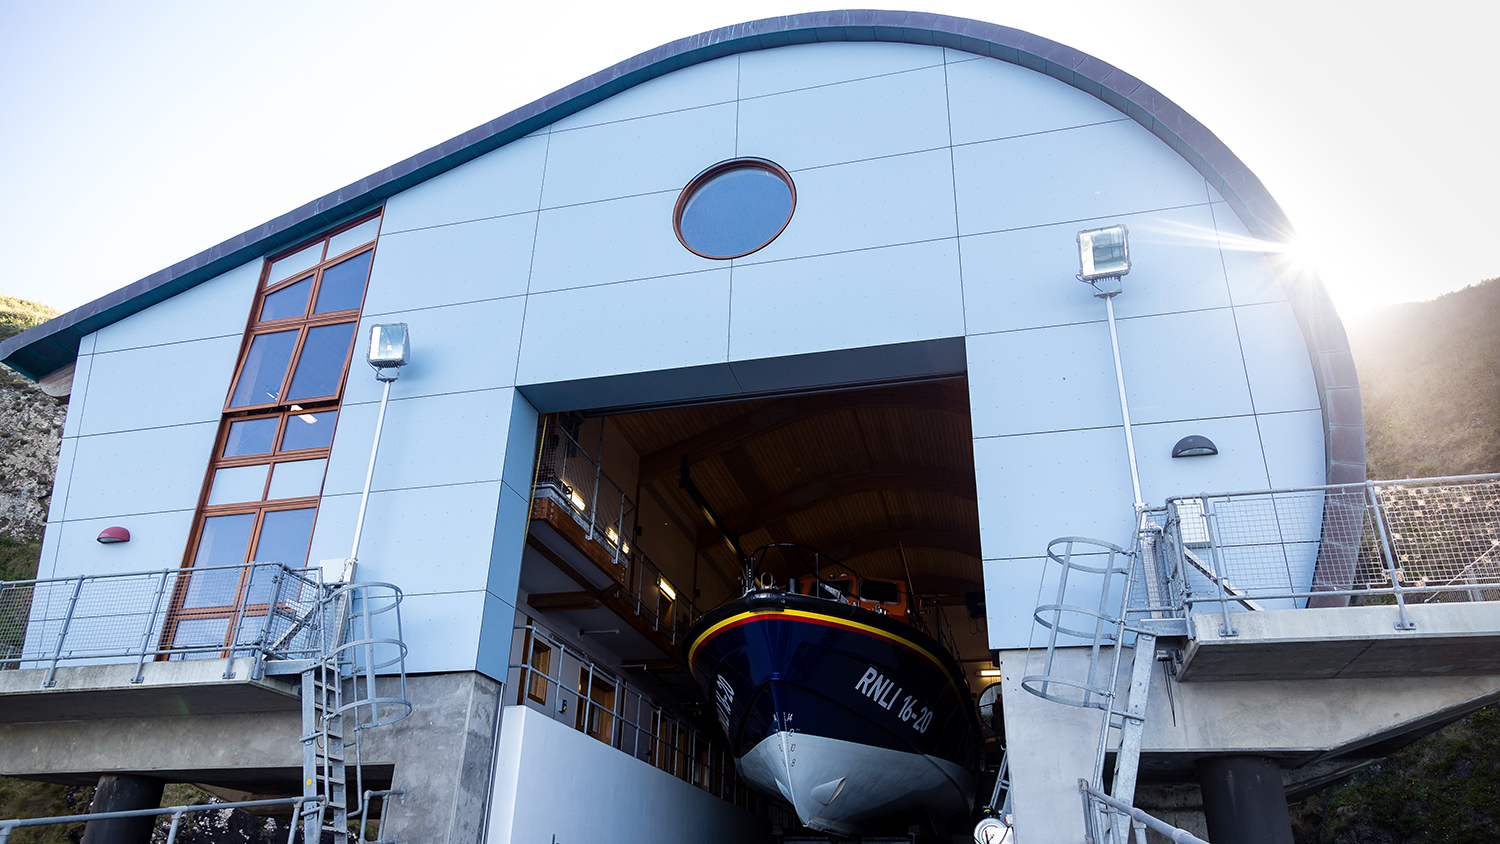 Lizard tamar class lifeboat inside the new boathouse